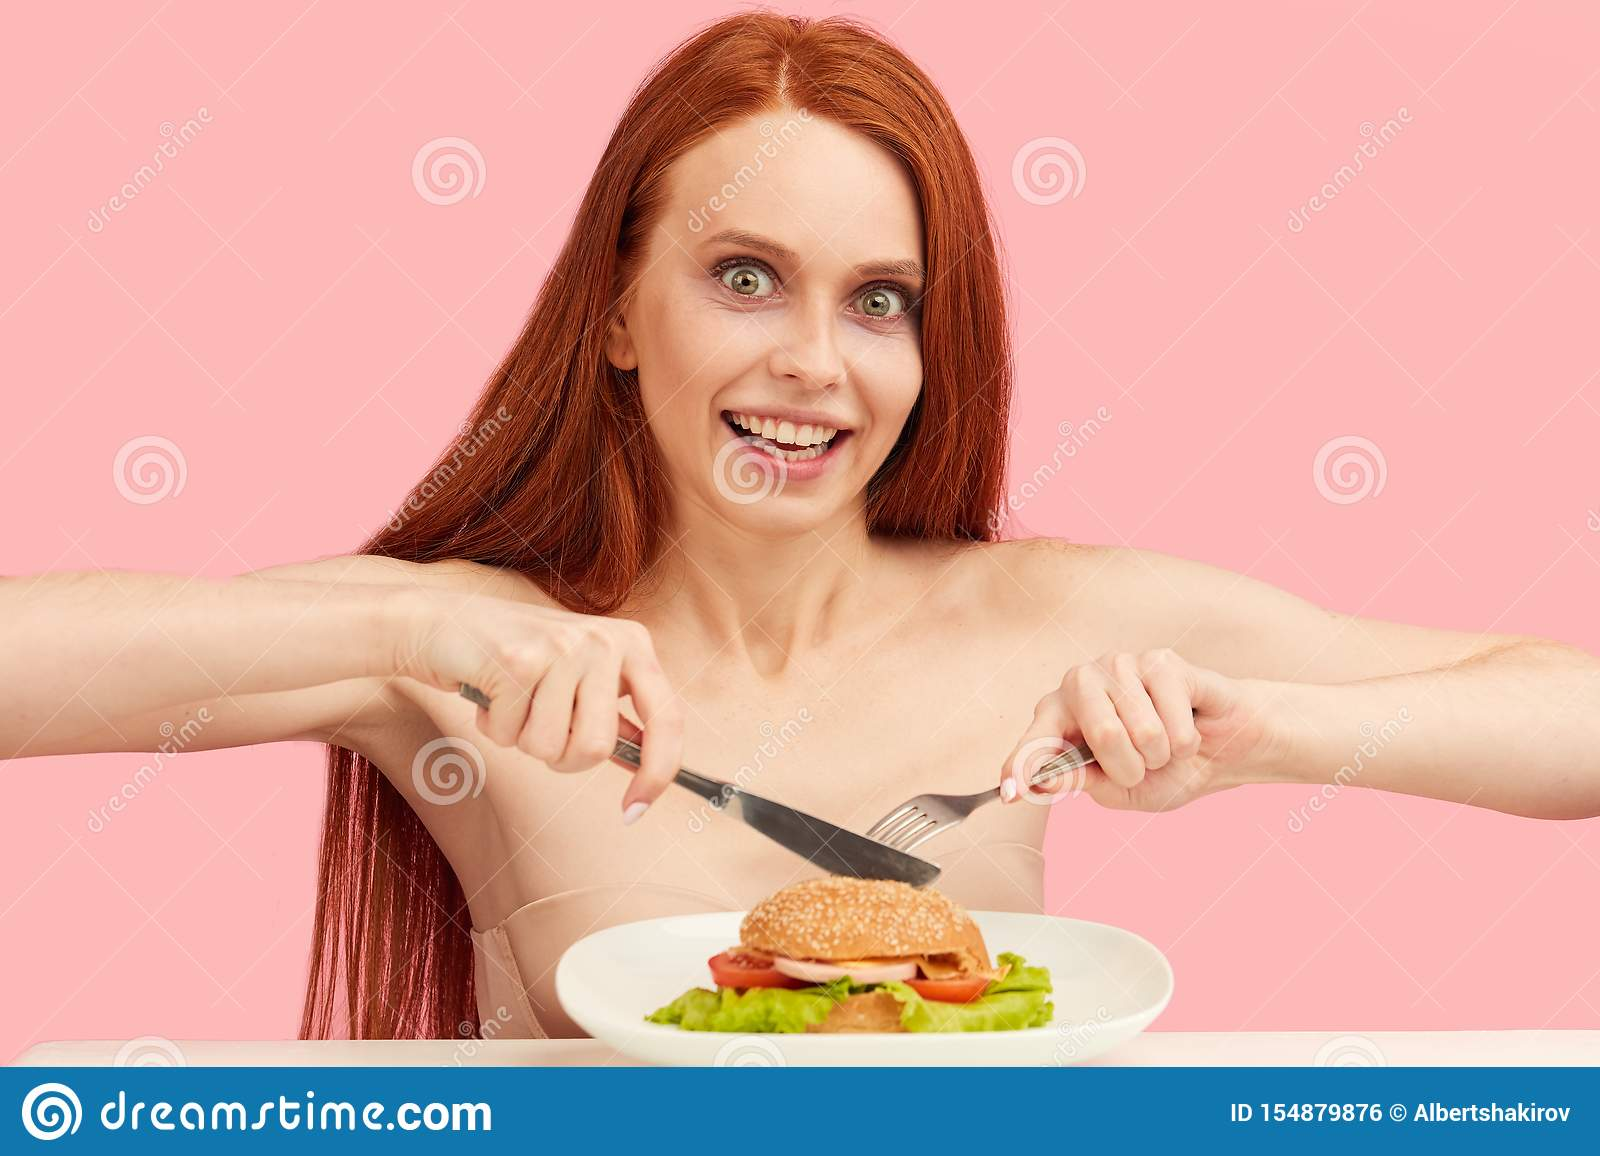 1 236 Skinny Redhead Photos Free Royalty Free Stock Photos From Dreamstime